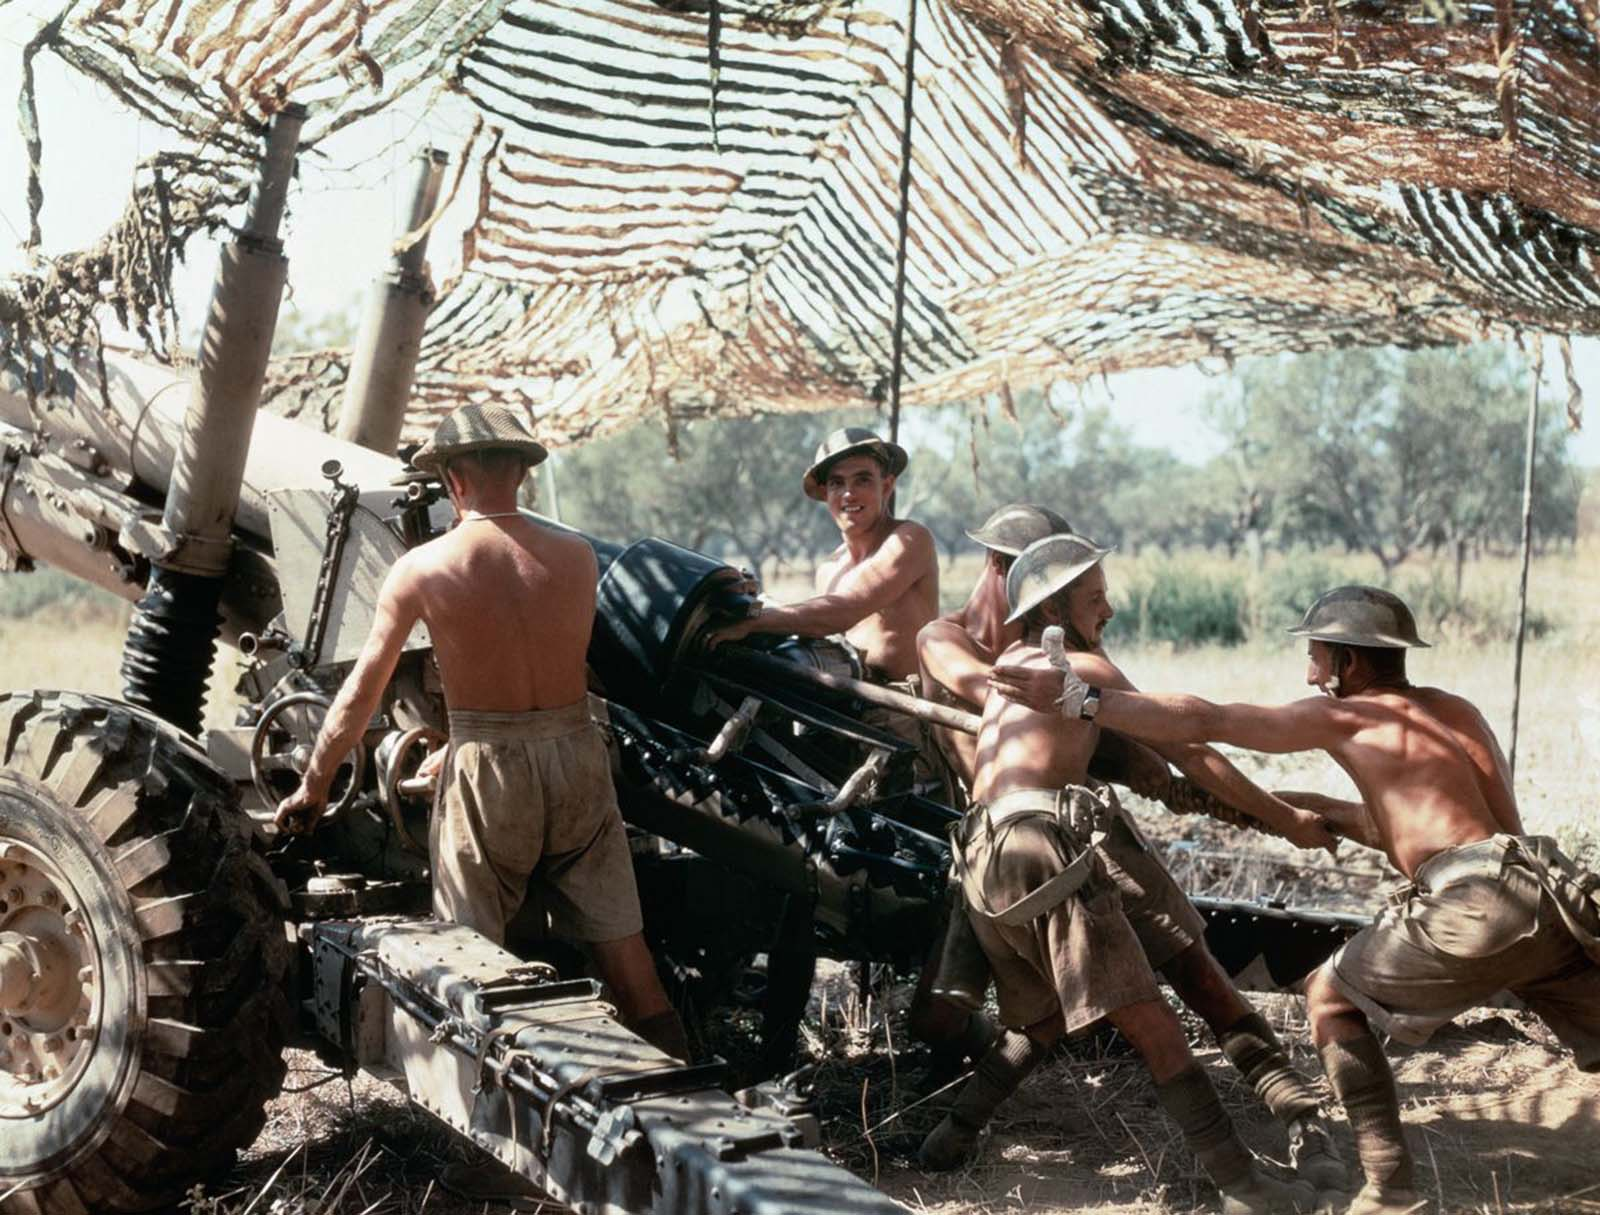 A 5.5-inch gun crew from 75th (Shropshire Yeomanry) Medium Regiment, Royal Artillery, in action in Italy.